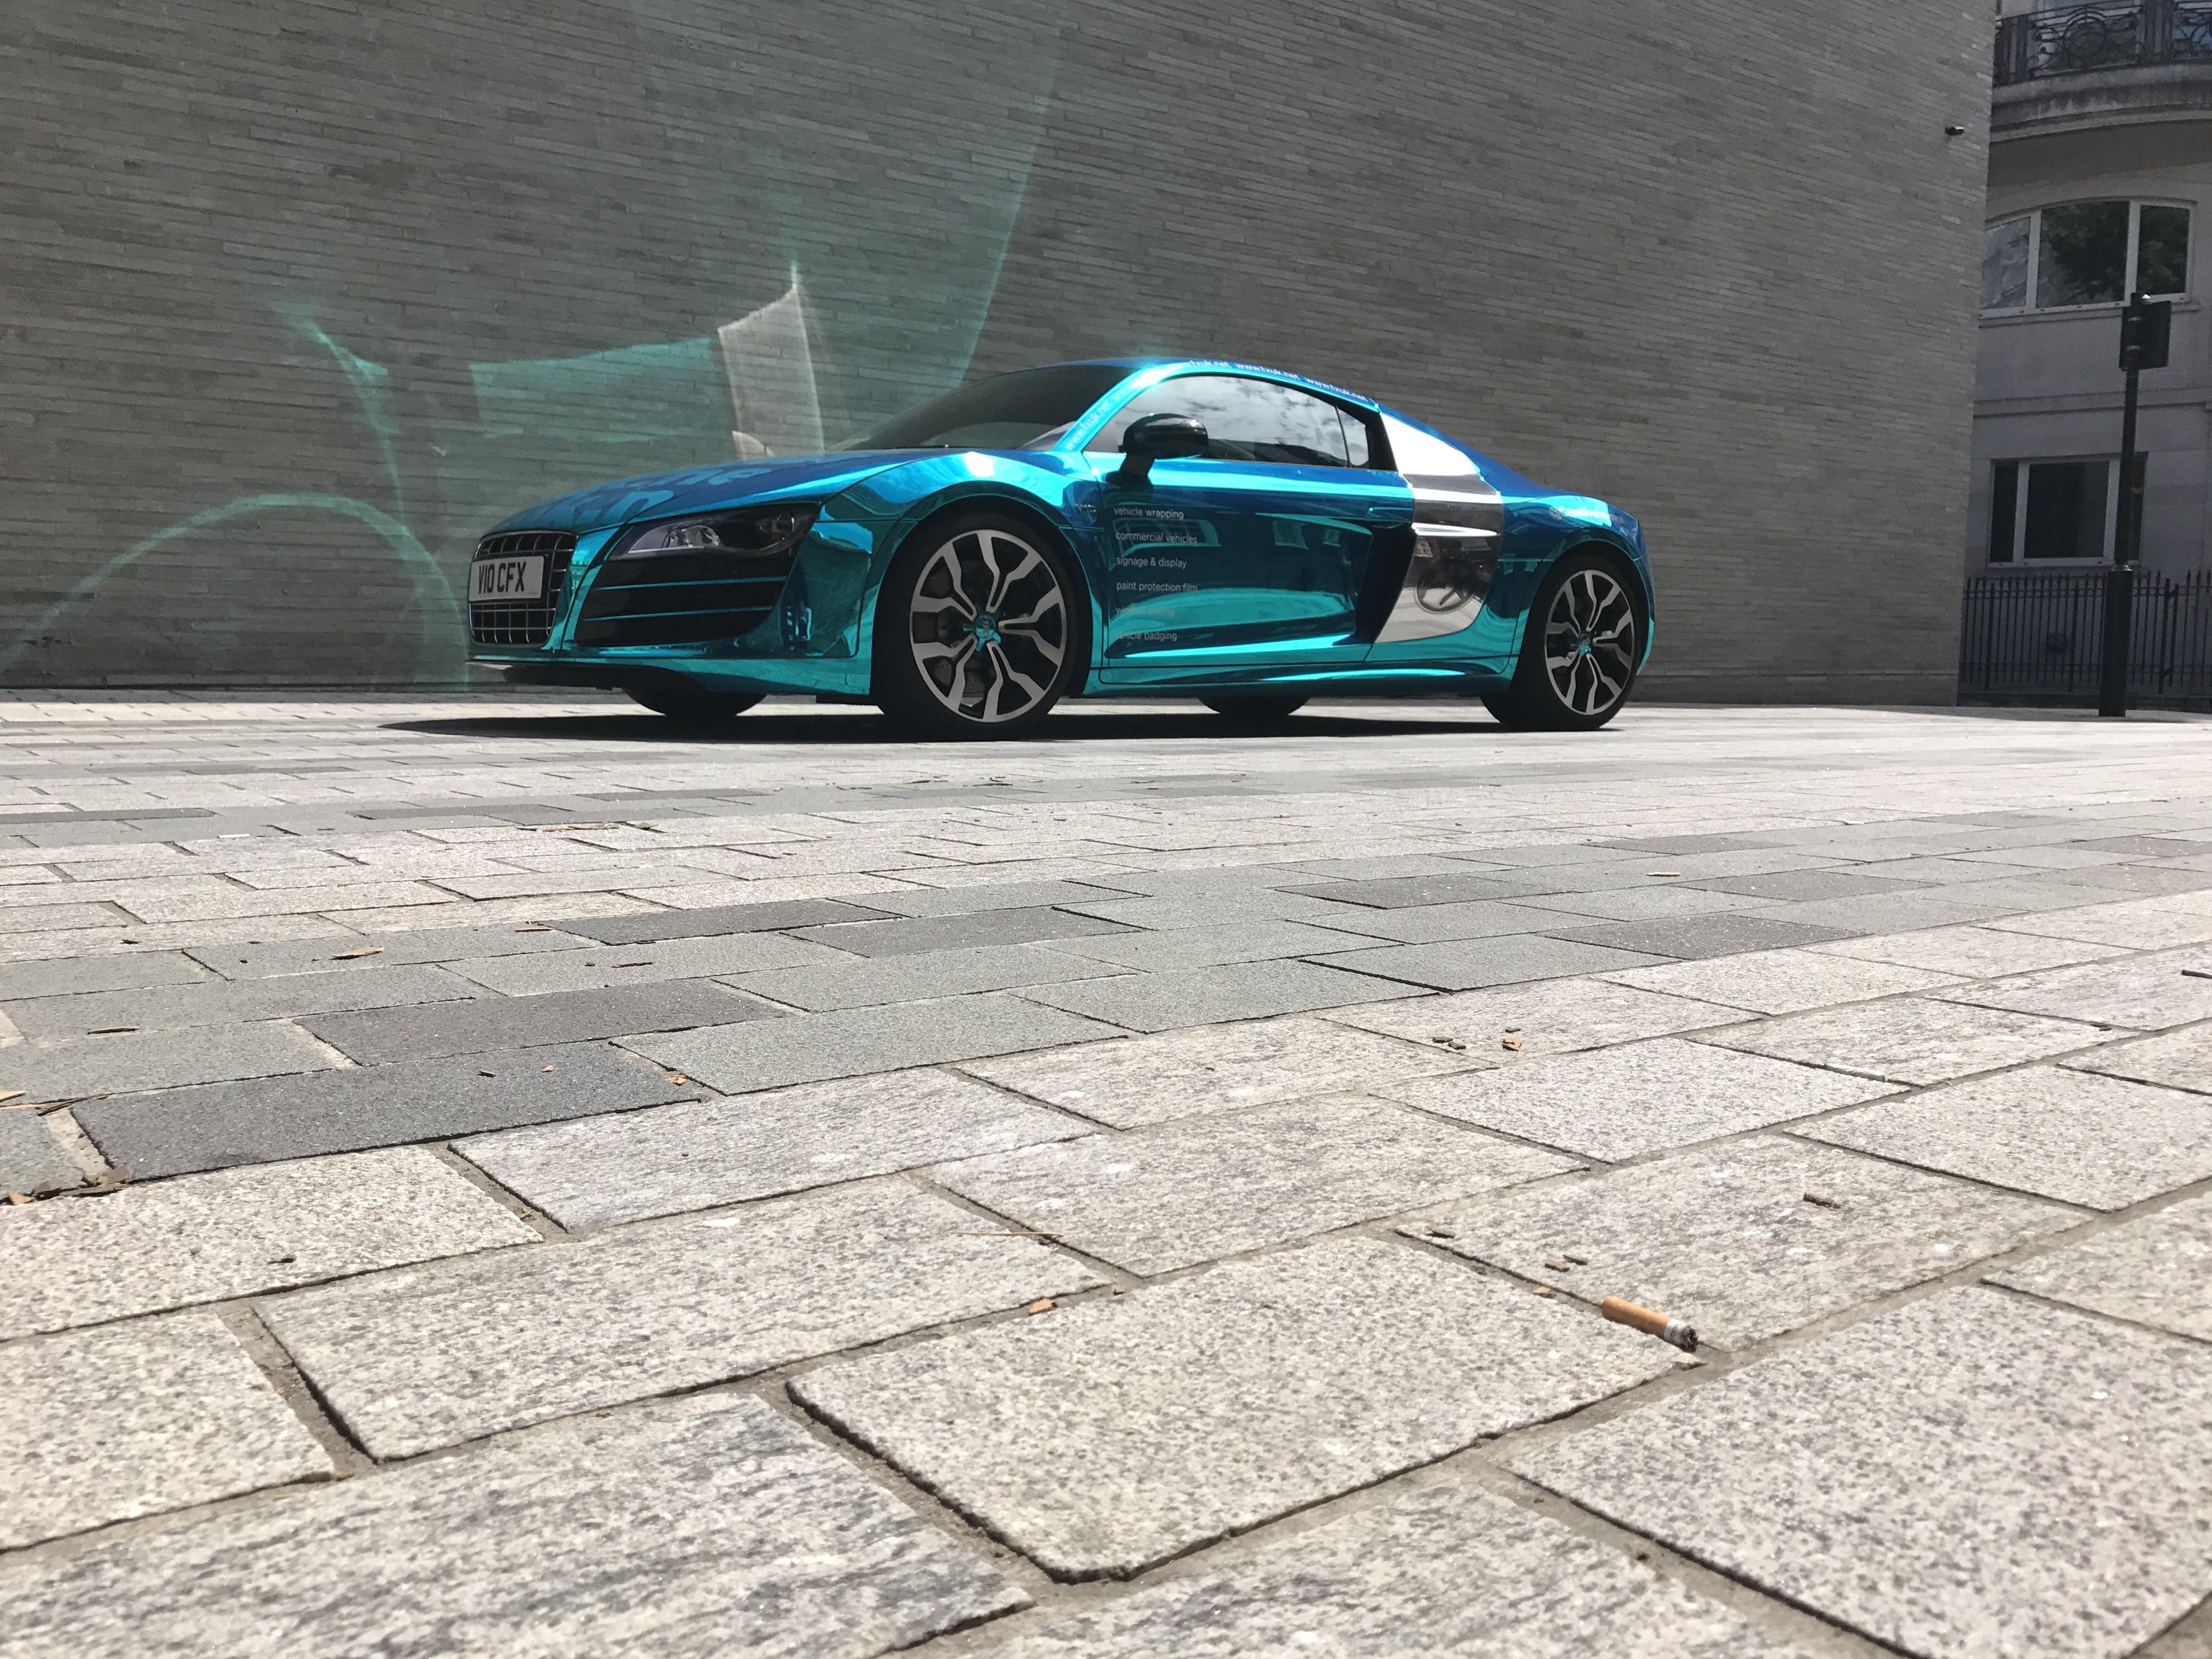 Audi R8 V10 Wrapped In Chrome By Cfx London